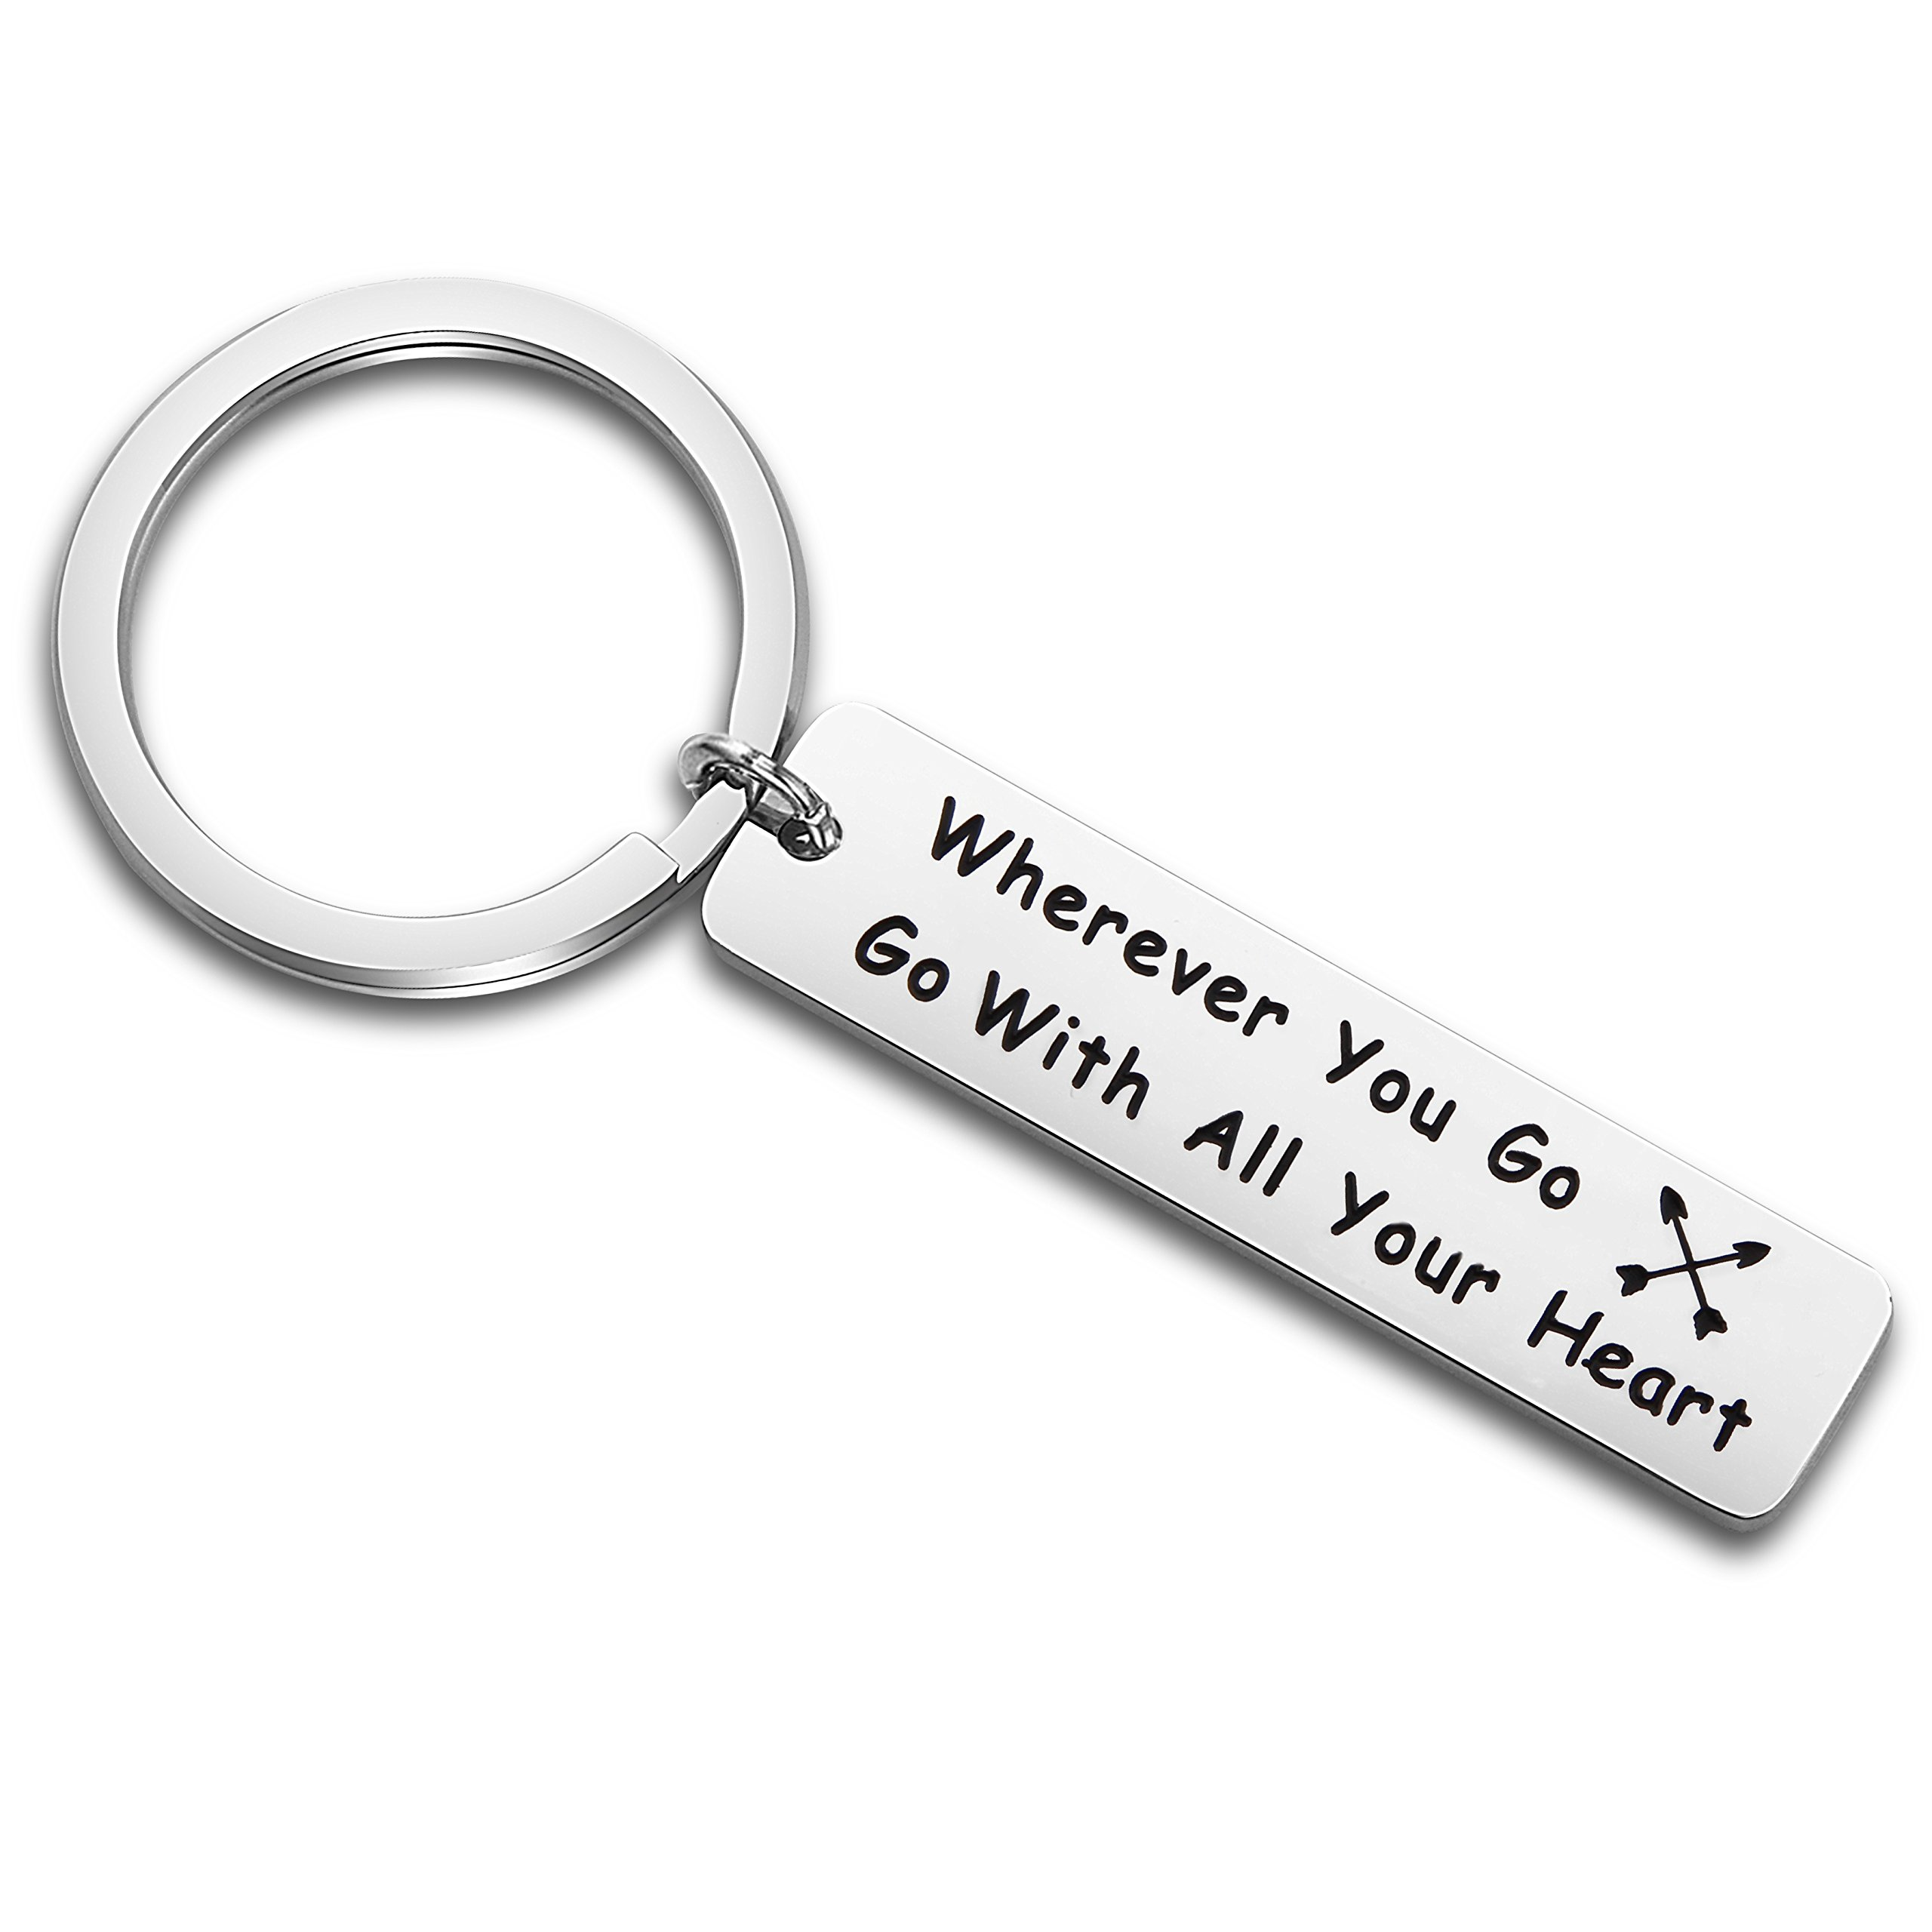 QIIER Travel Keychain Wherever You Go Go with All Your Heart Keychain Going Away Gift Travel Gift Graduation Gift (silver)